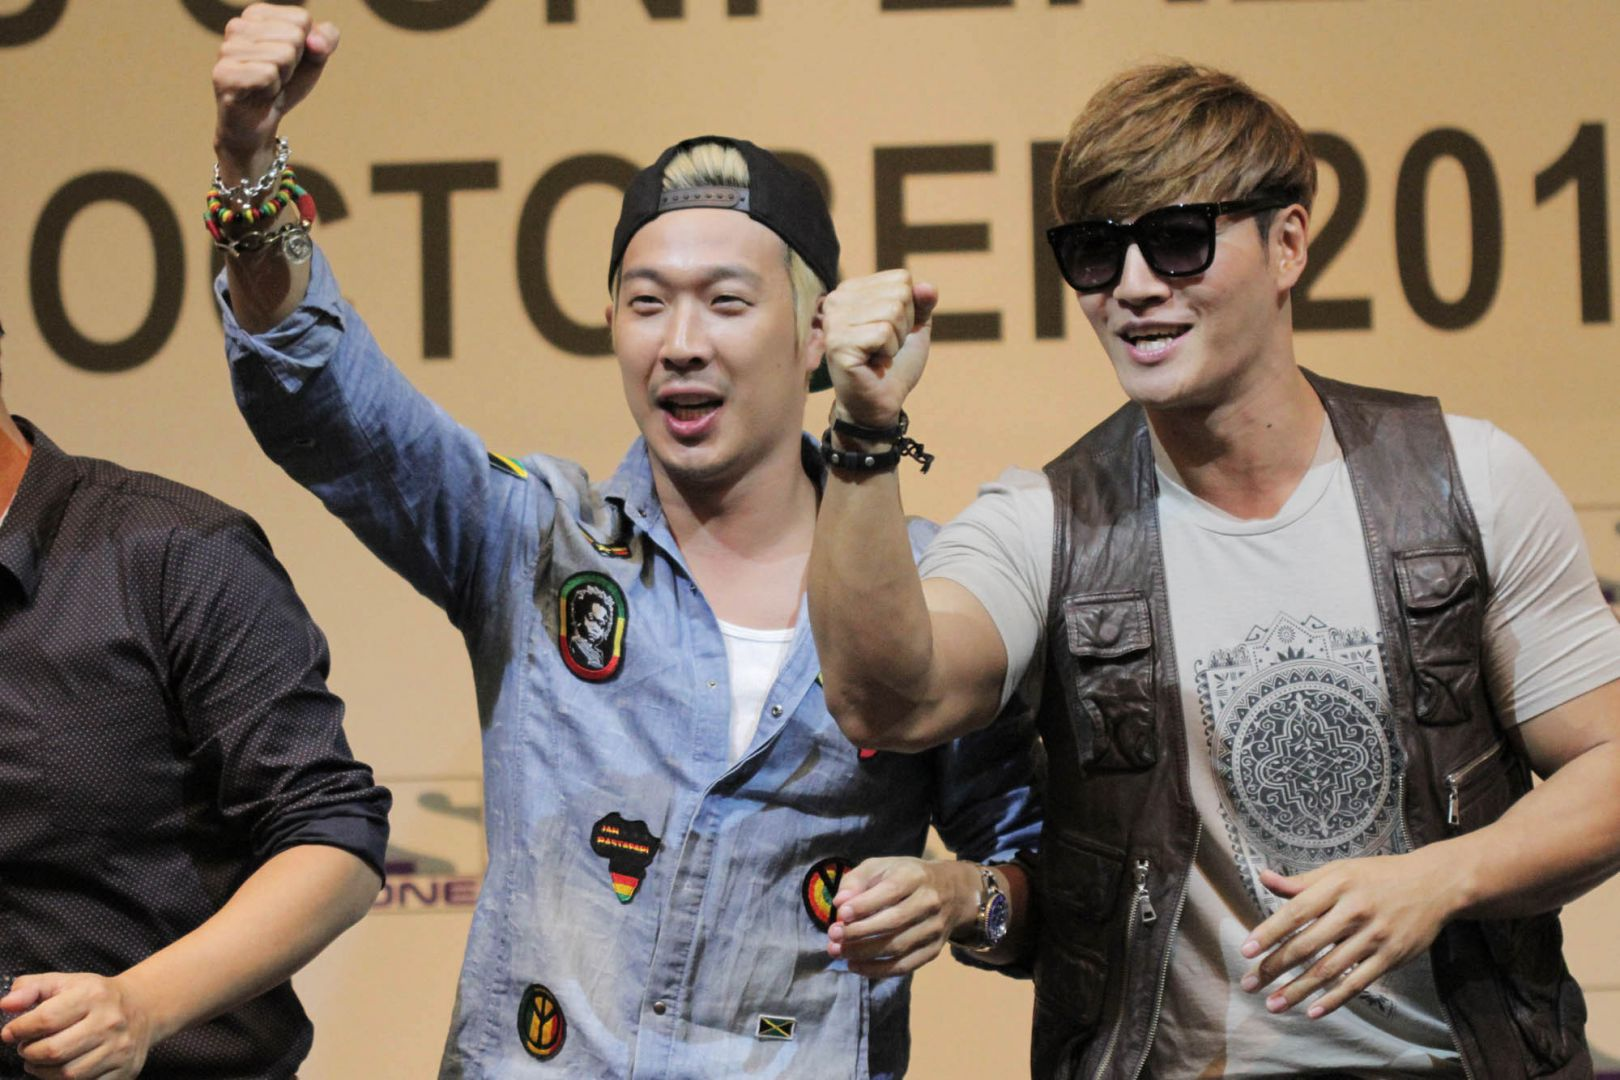 Running Man's Kim Jong Kook and Haha launch a new venture together